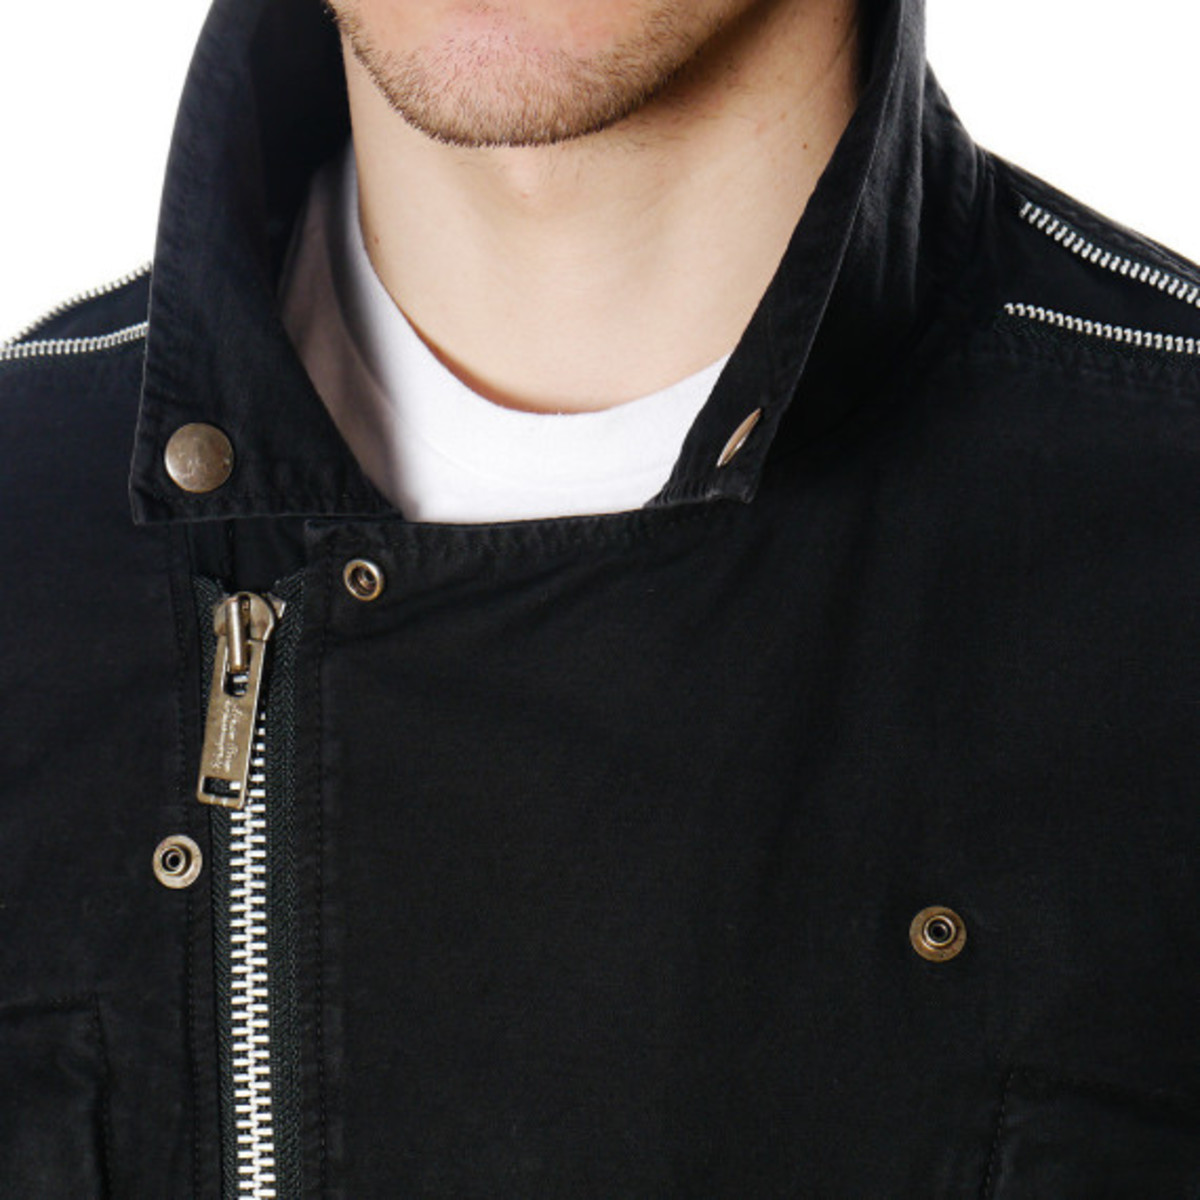 undercover-m4201-2-jacket-06